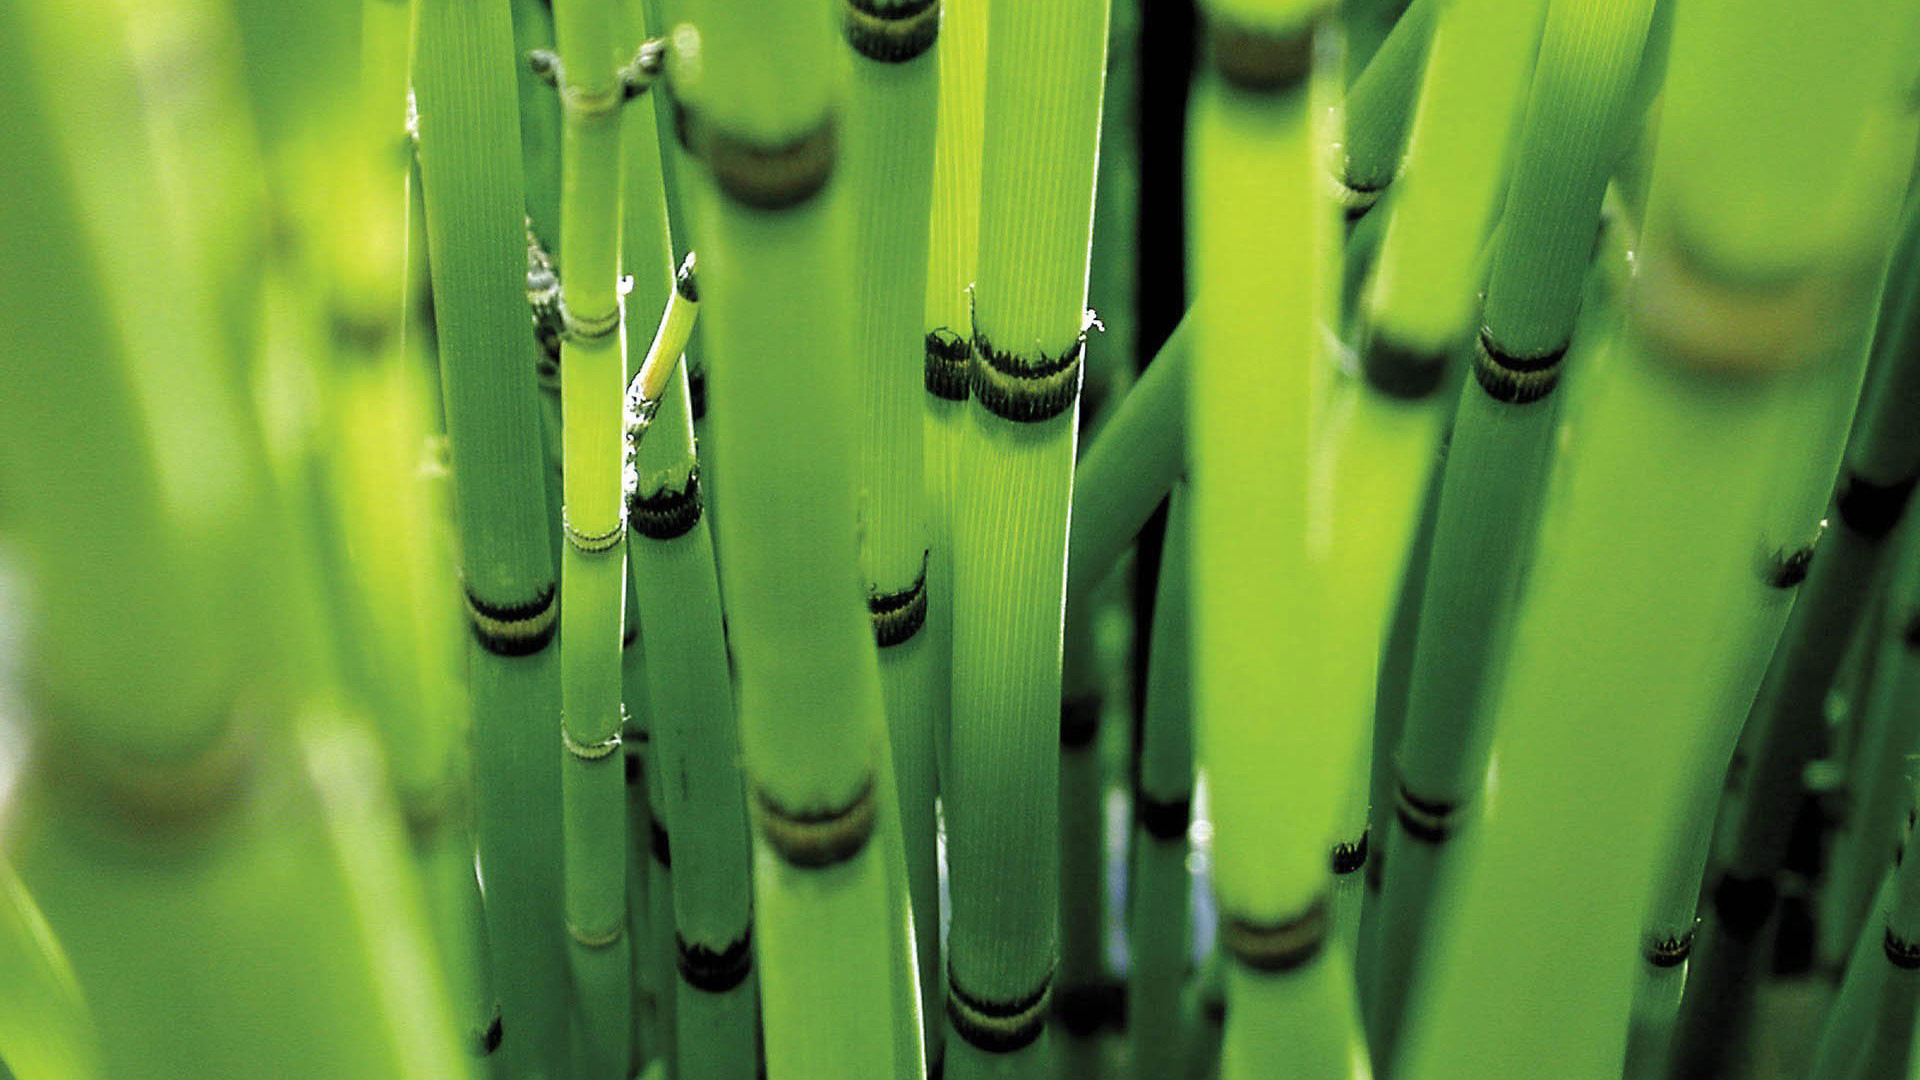 1920x1080 hd pics photos green bamboo nature attractive desktop background wallpaper